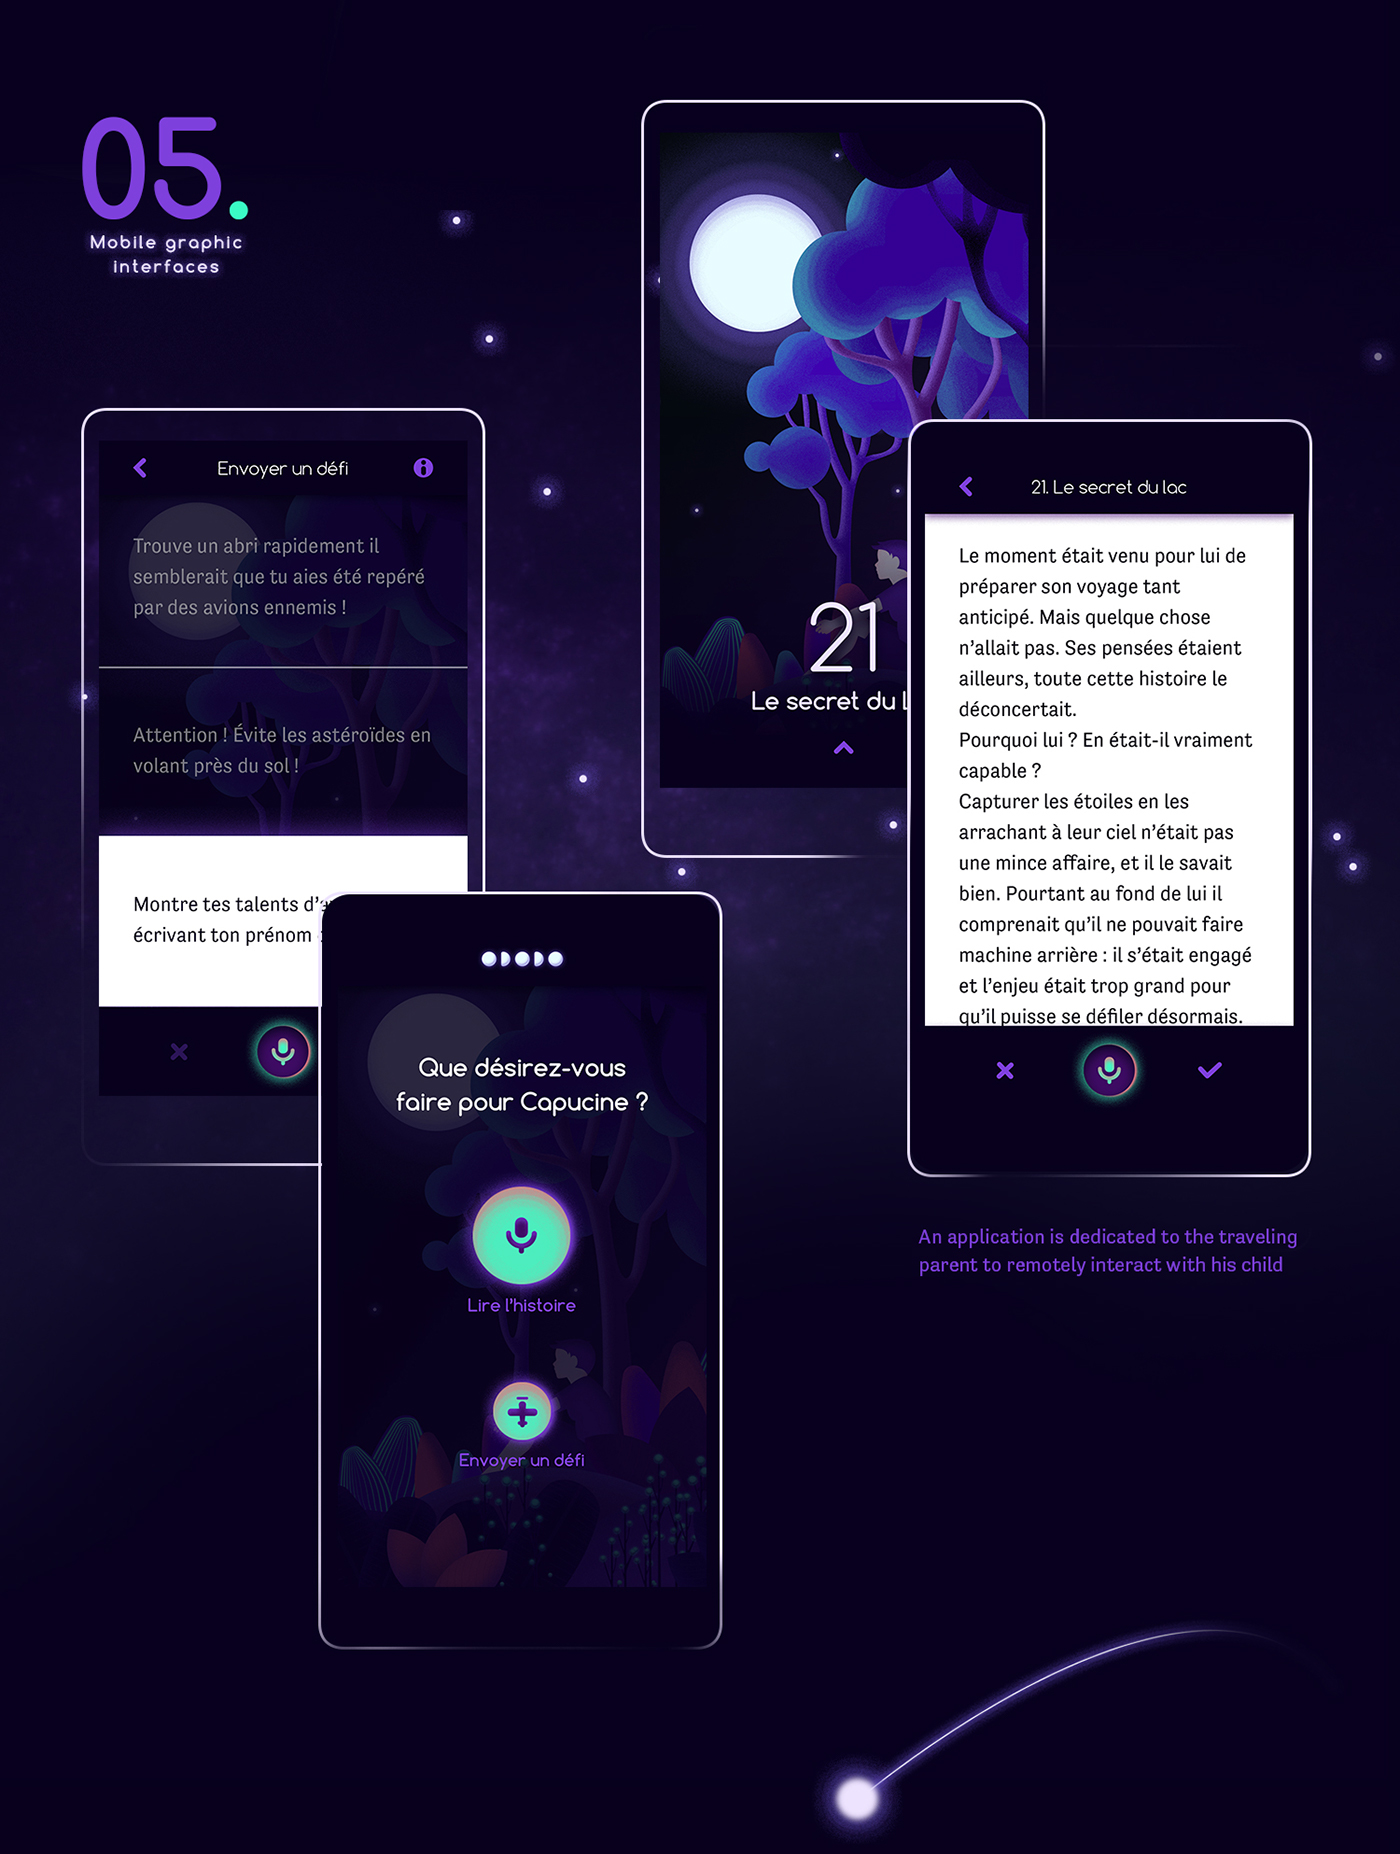 moon story app plane Connected object design Technology beacon child light